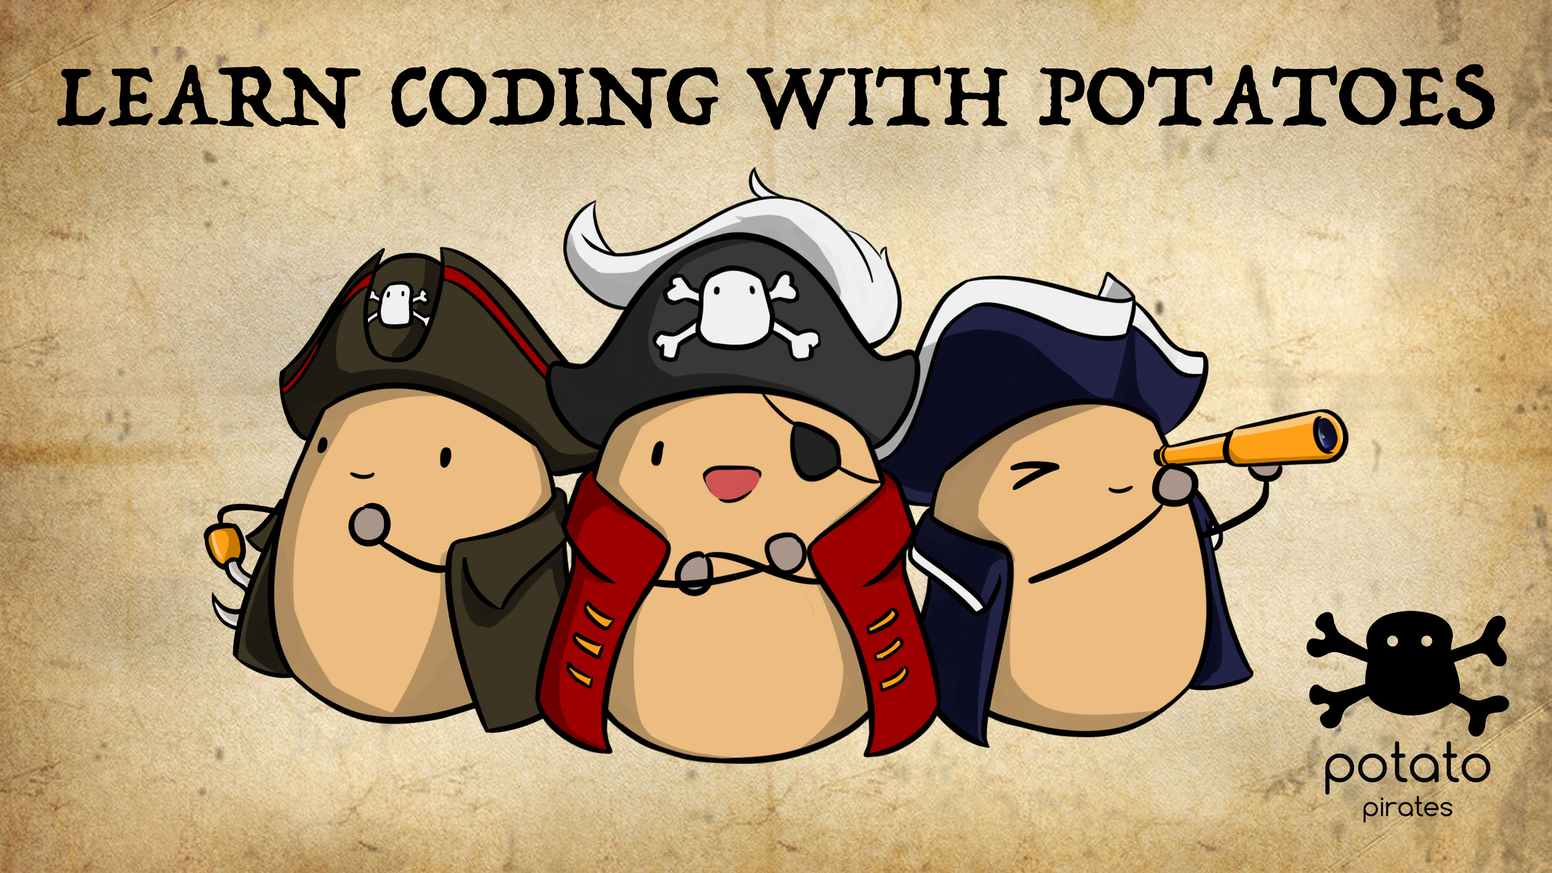 Potatoes, programming and piracy rolled into a strategic card game perfect for classrooms, family days, or even game night with friends